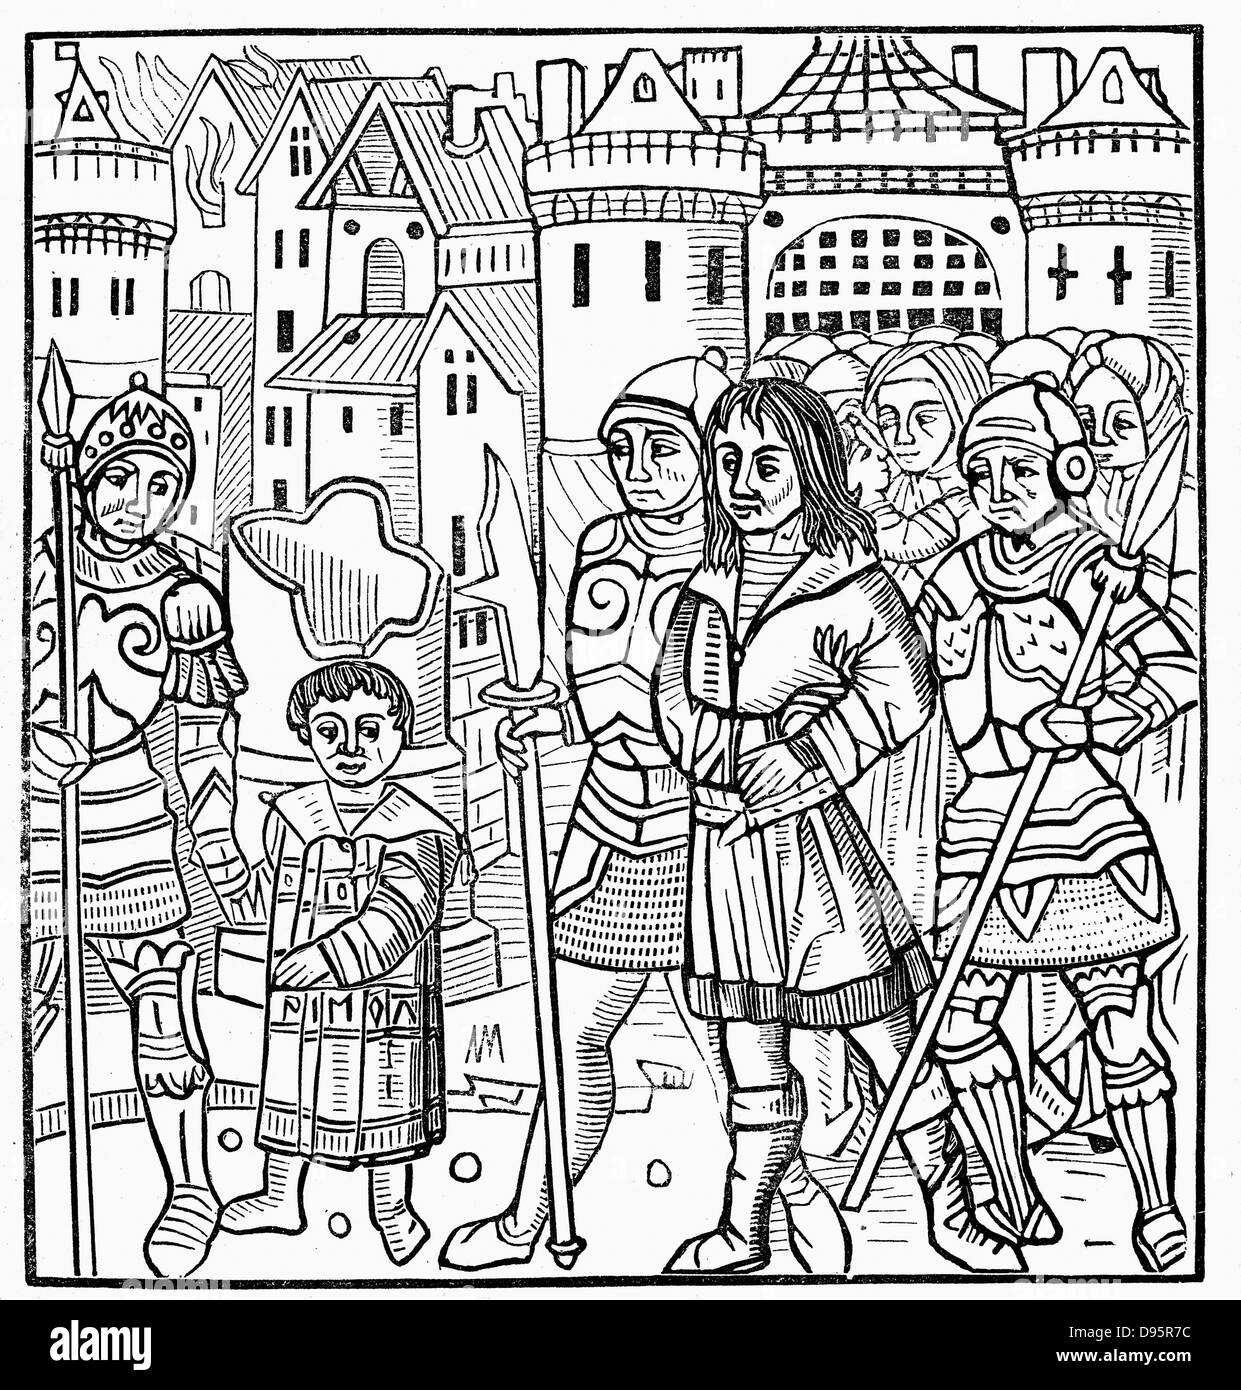 Saint Louis (Louis IX of France) and his brothers Alphonse and Charles taken prisoner during the Sixth  Crusade. - Stock Image